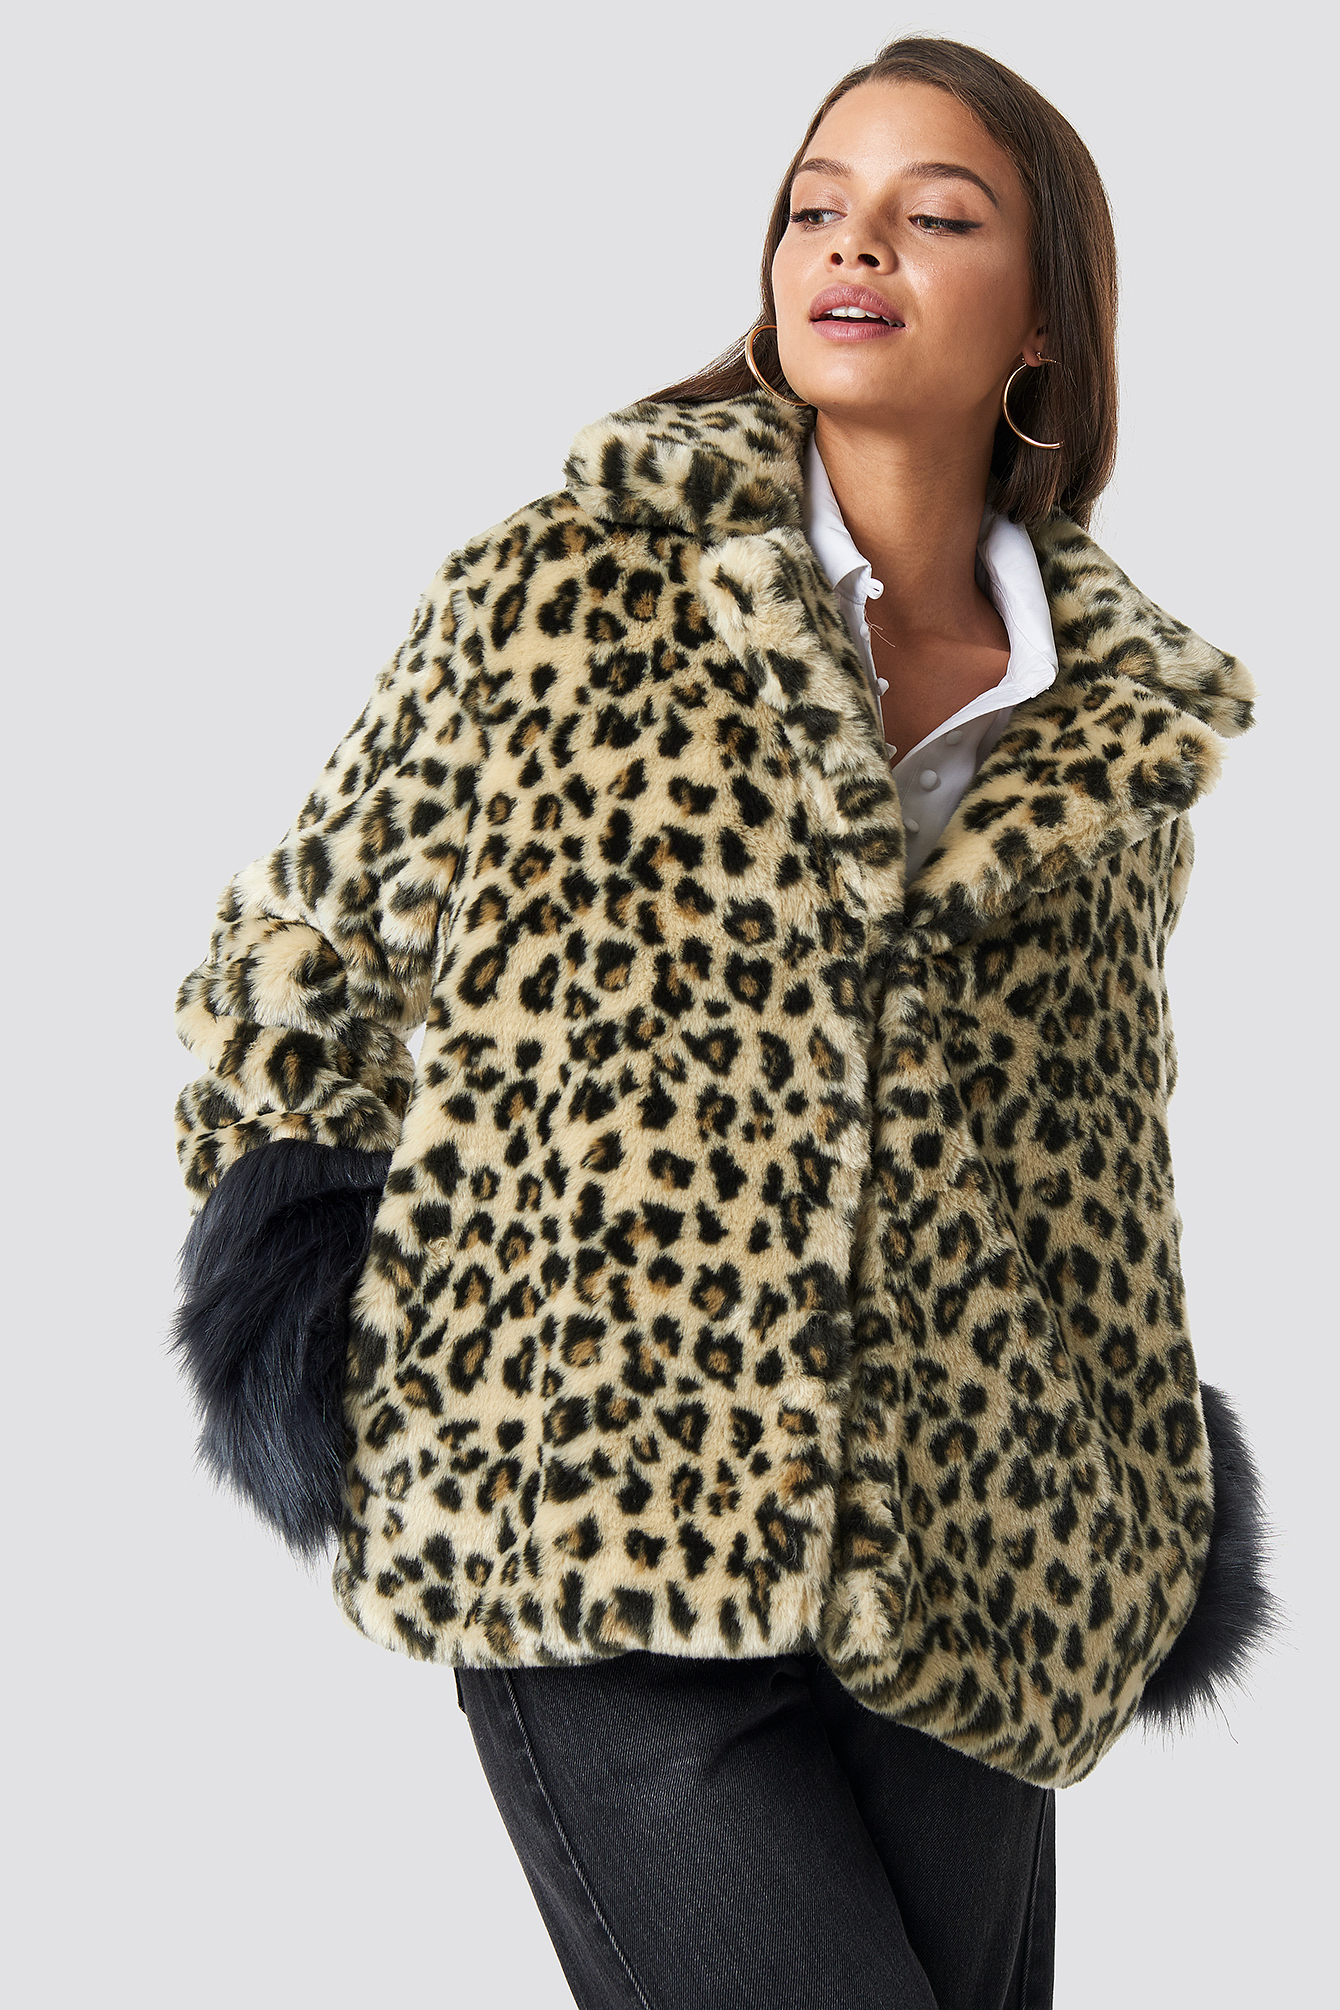 hannalicious x na-kd -  Sleeve Detailed Faux Fur Leo Jacket - Brown,Beige